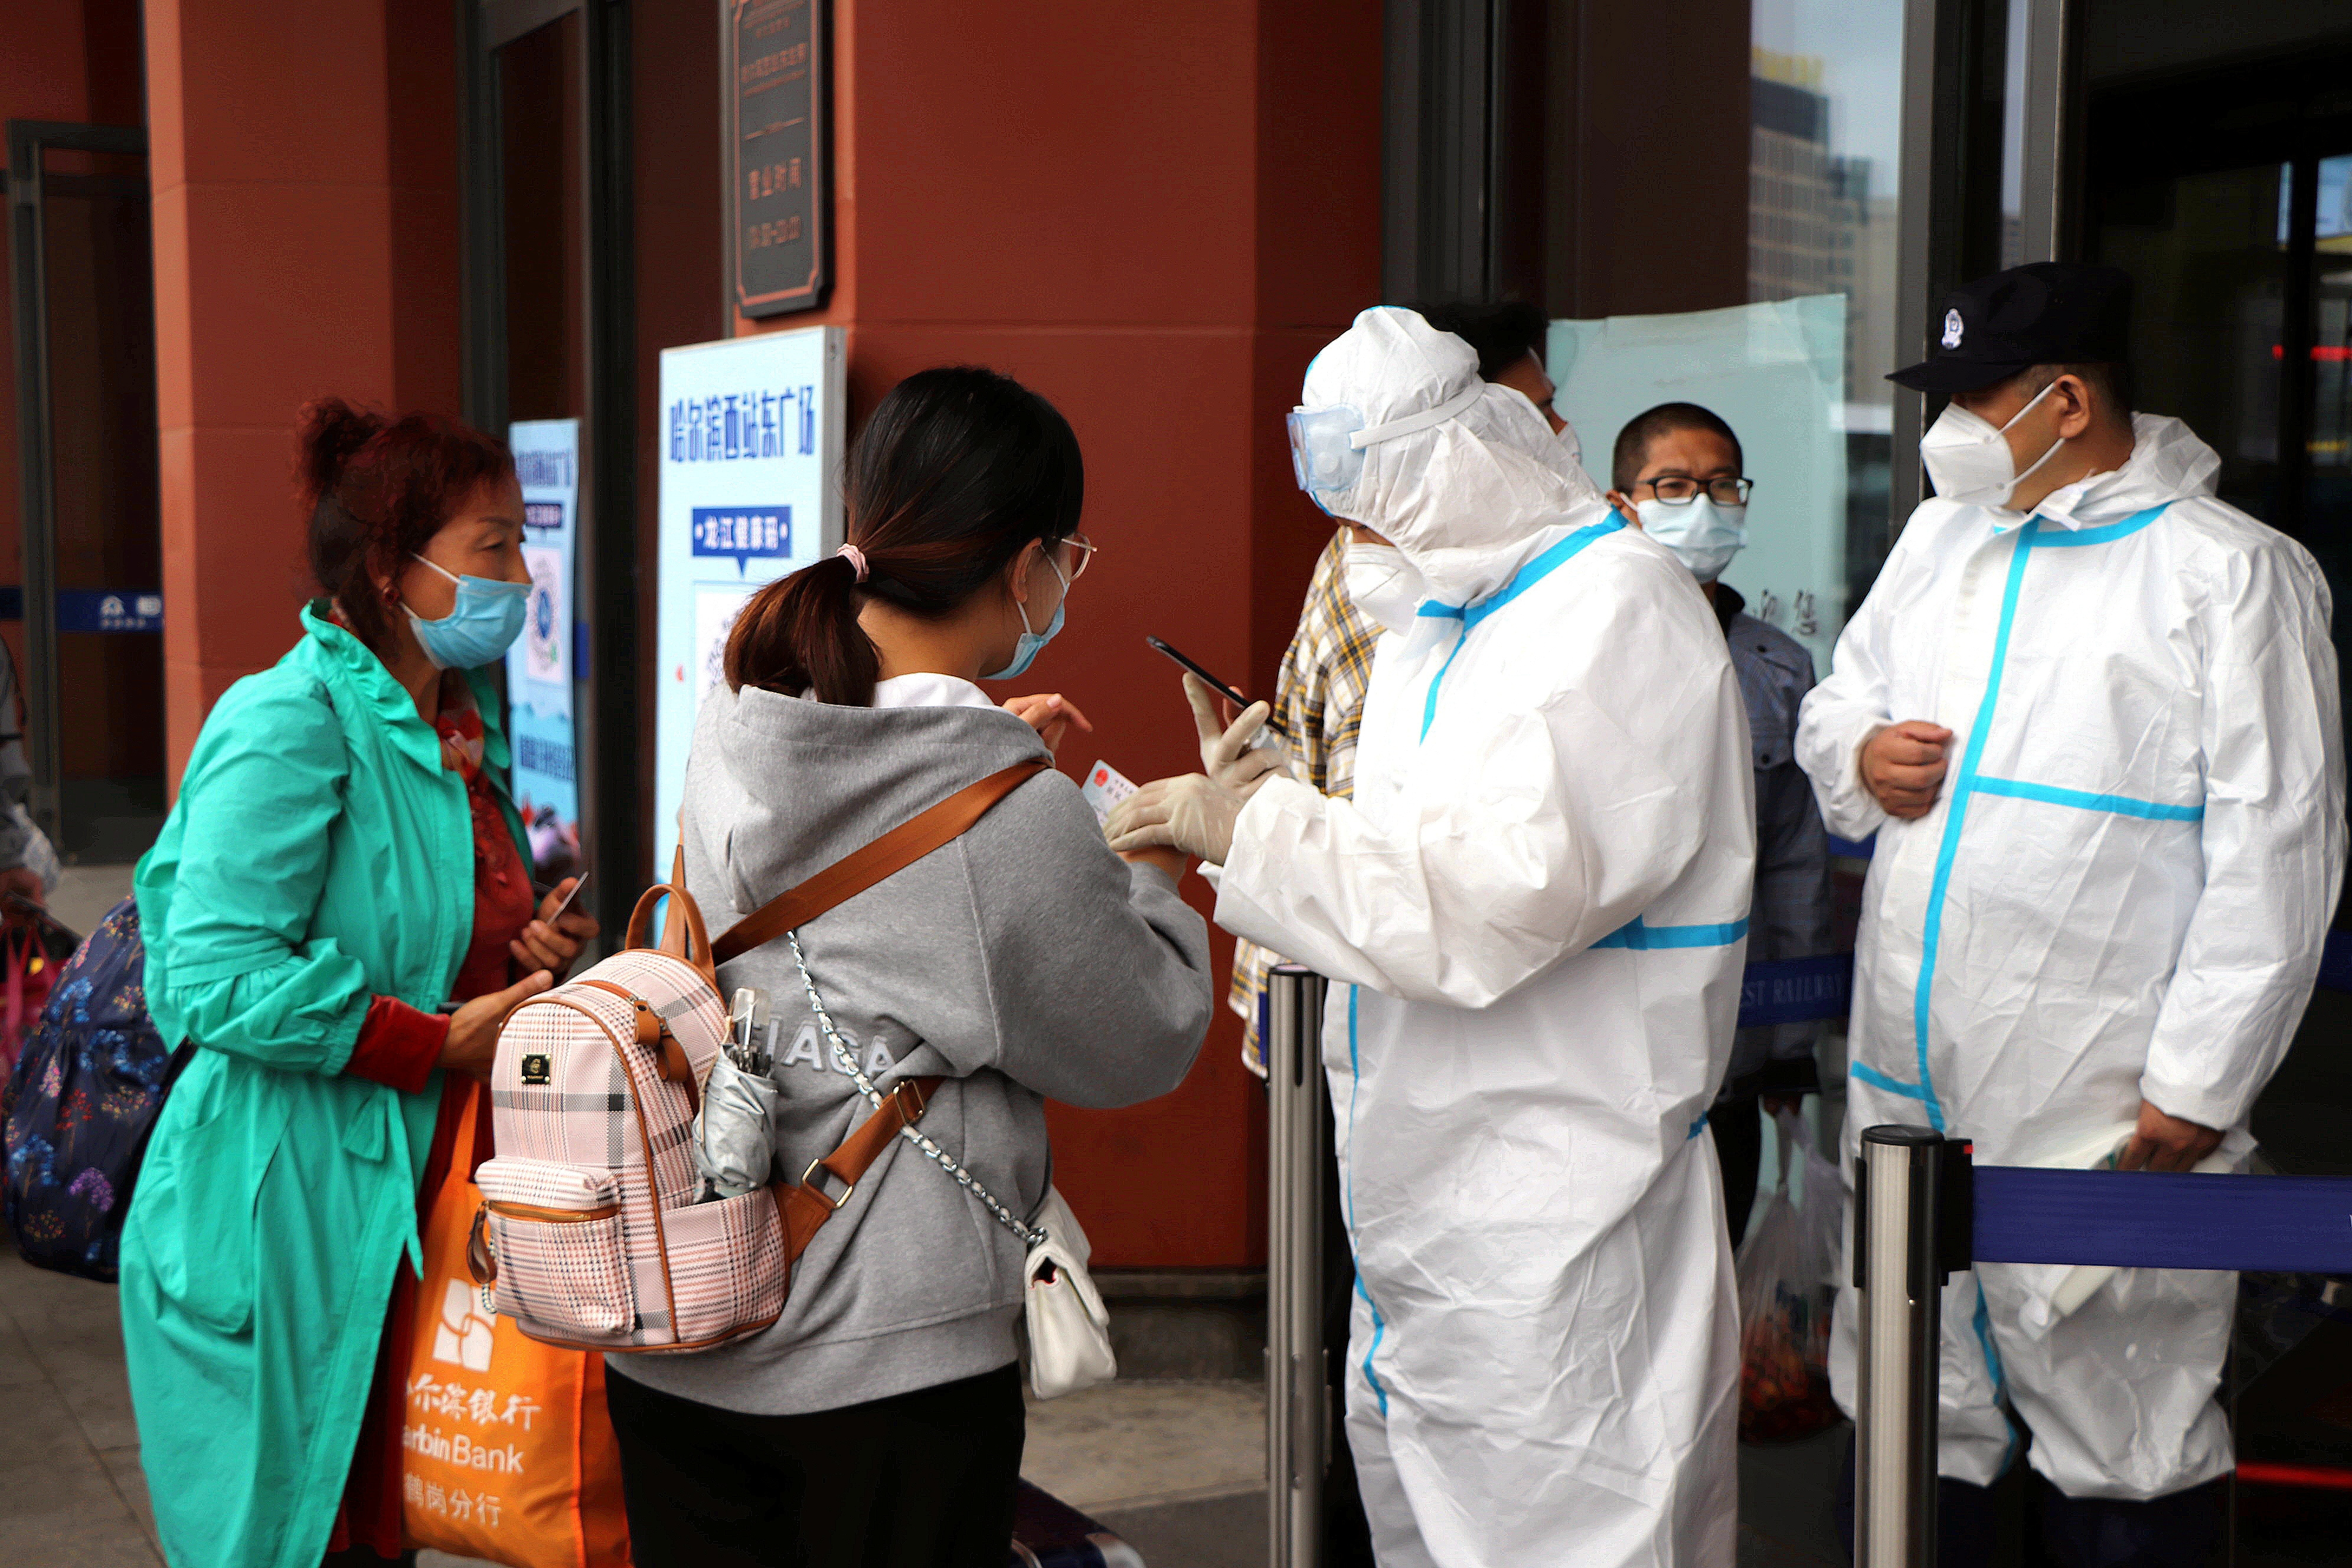 Staff members in protective suits check proof of negative test results for travellers at an entrance to the Harbin West Railway Station following new local cases of the coronavirus disease (COVID-19) in Harbin, Heilongjiang province, China September 22, 2021. cnsphoto via REUTERS ATTENTION EDITORS - THIS IMAGE WAS PROVIDED BY A THIRD PARTY. CHINA OUT.